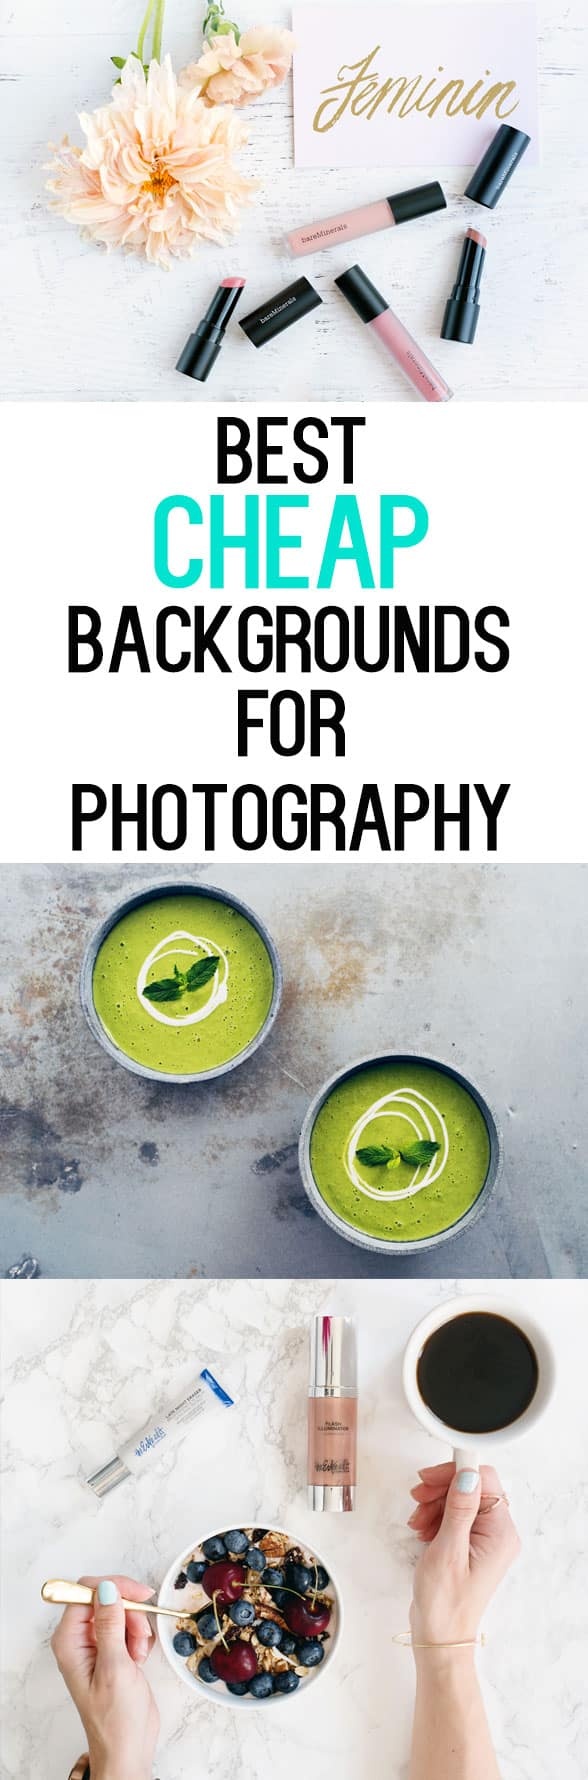 Best Cheap Backdrops for Photography - $25 or less!